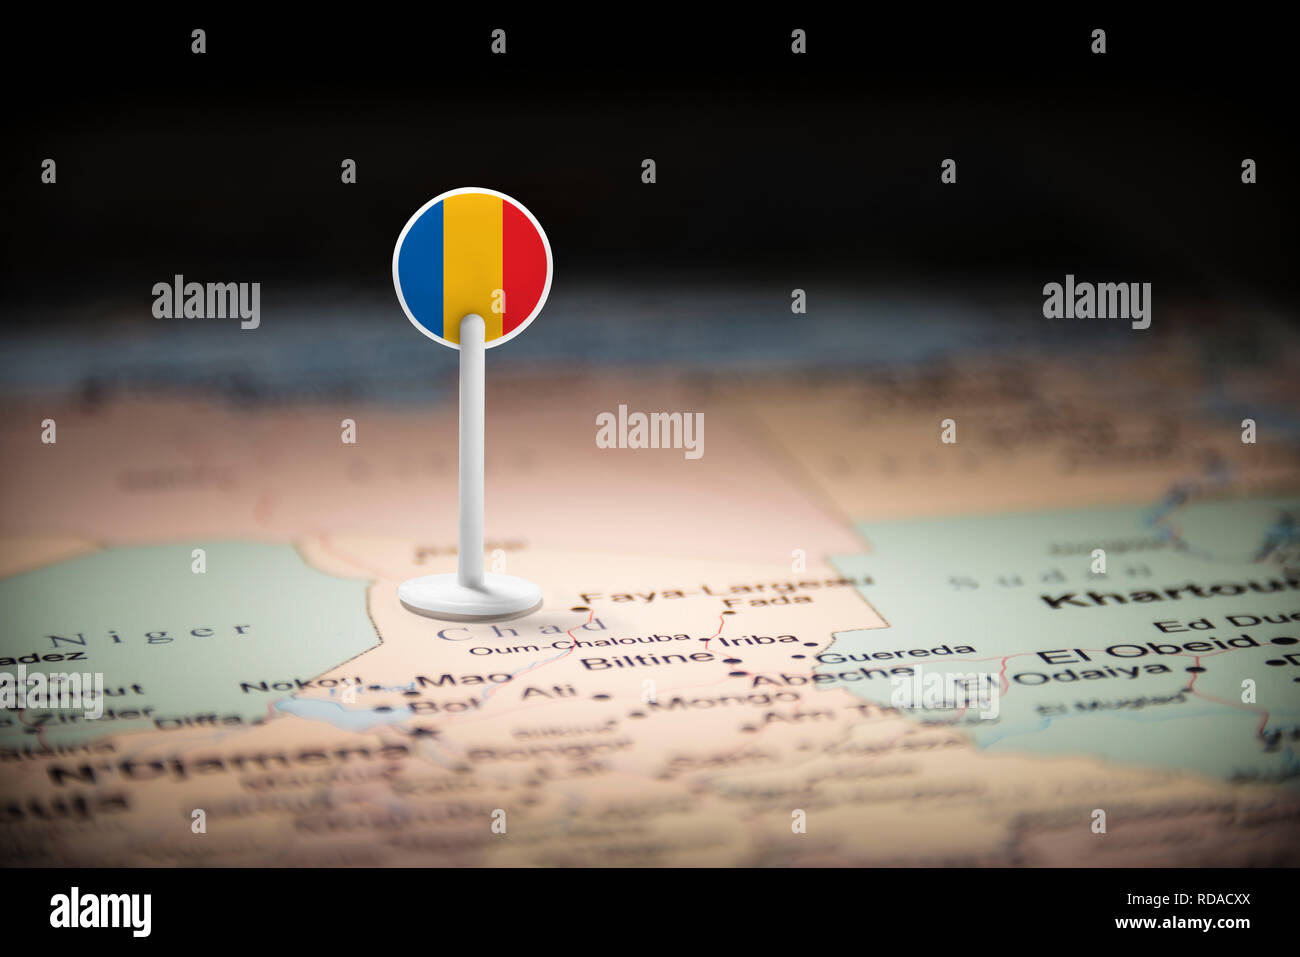 Chad marked with a flag on the map - Stock Image